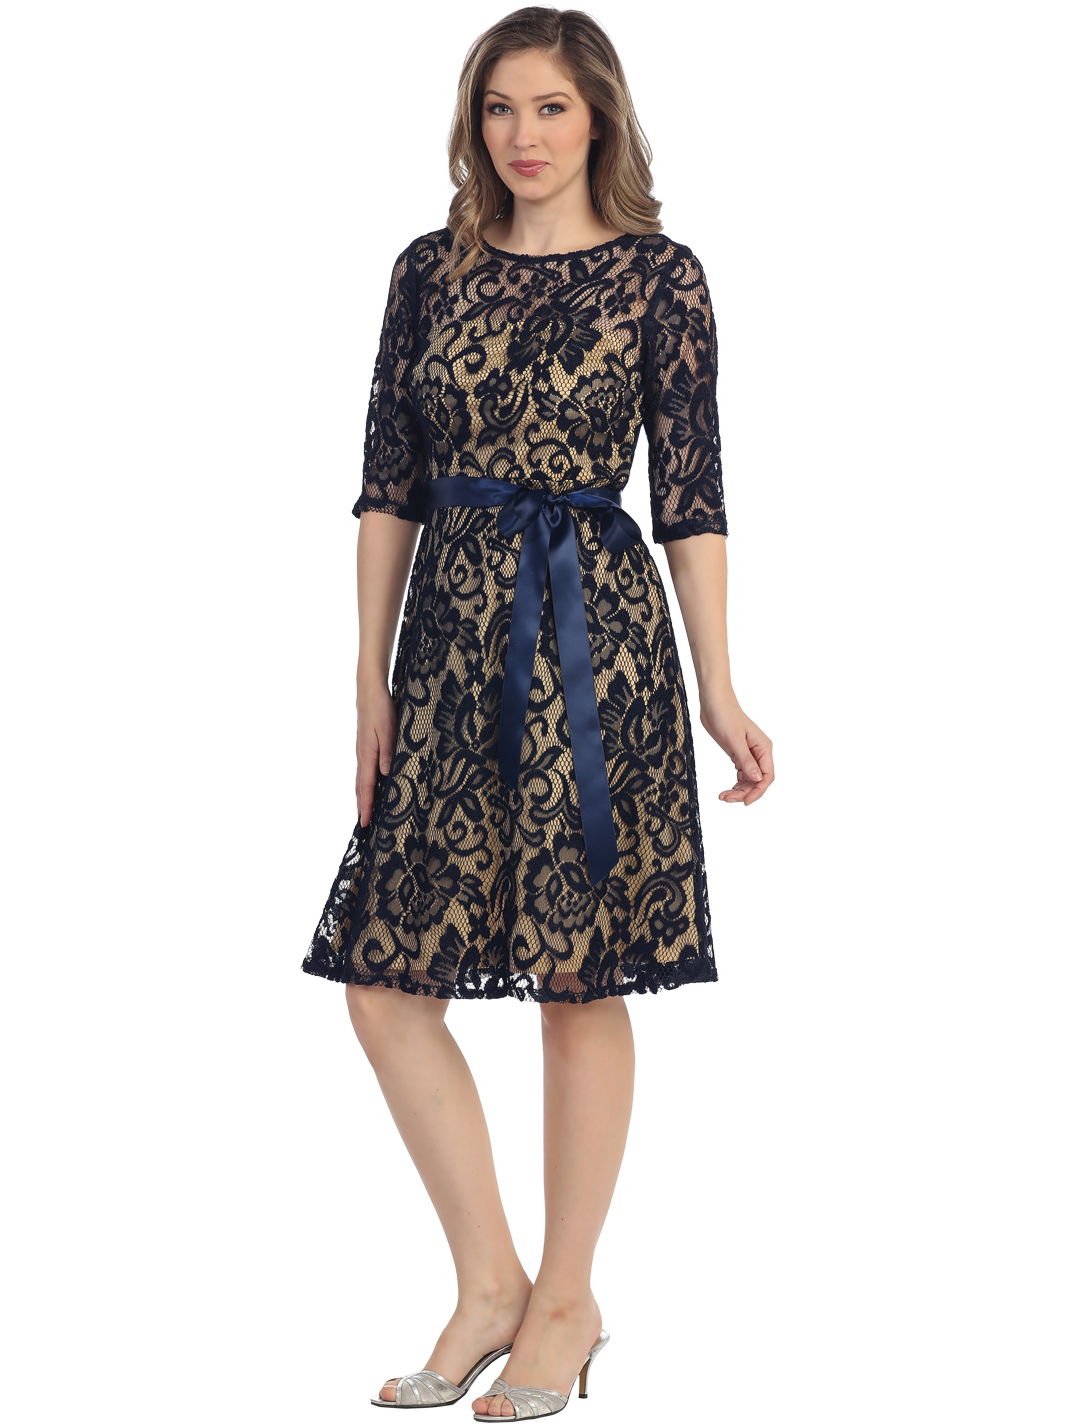 Black dress quarter sleeve - S8791 Lace Three Quarter Sleeve Cocktail Dress Navy Gold Front View Medium